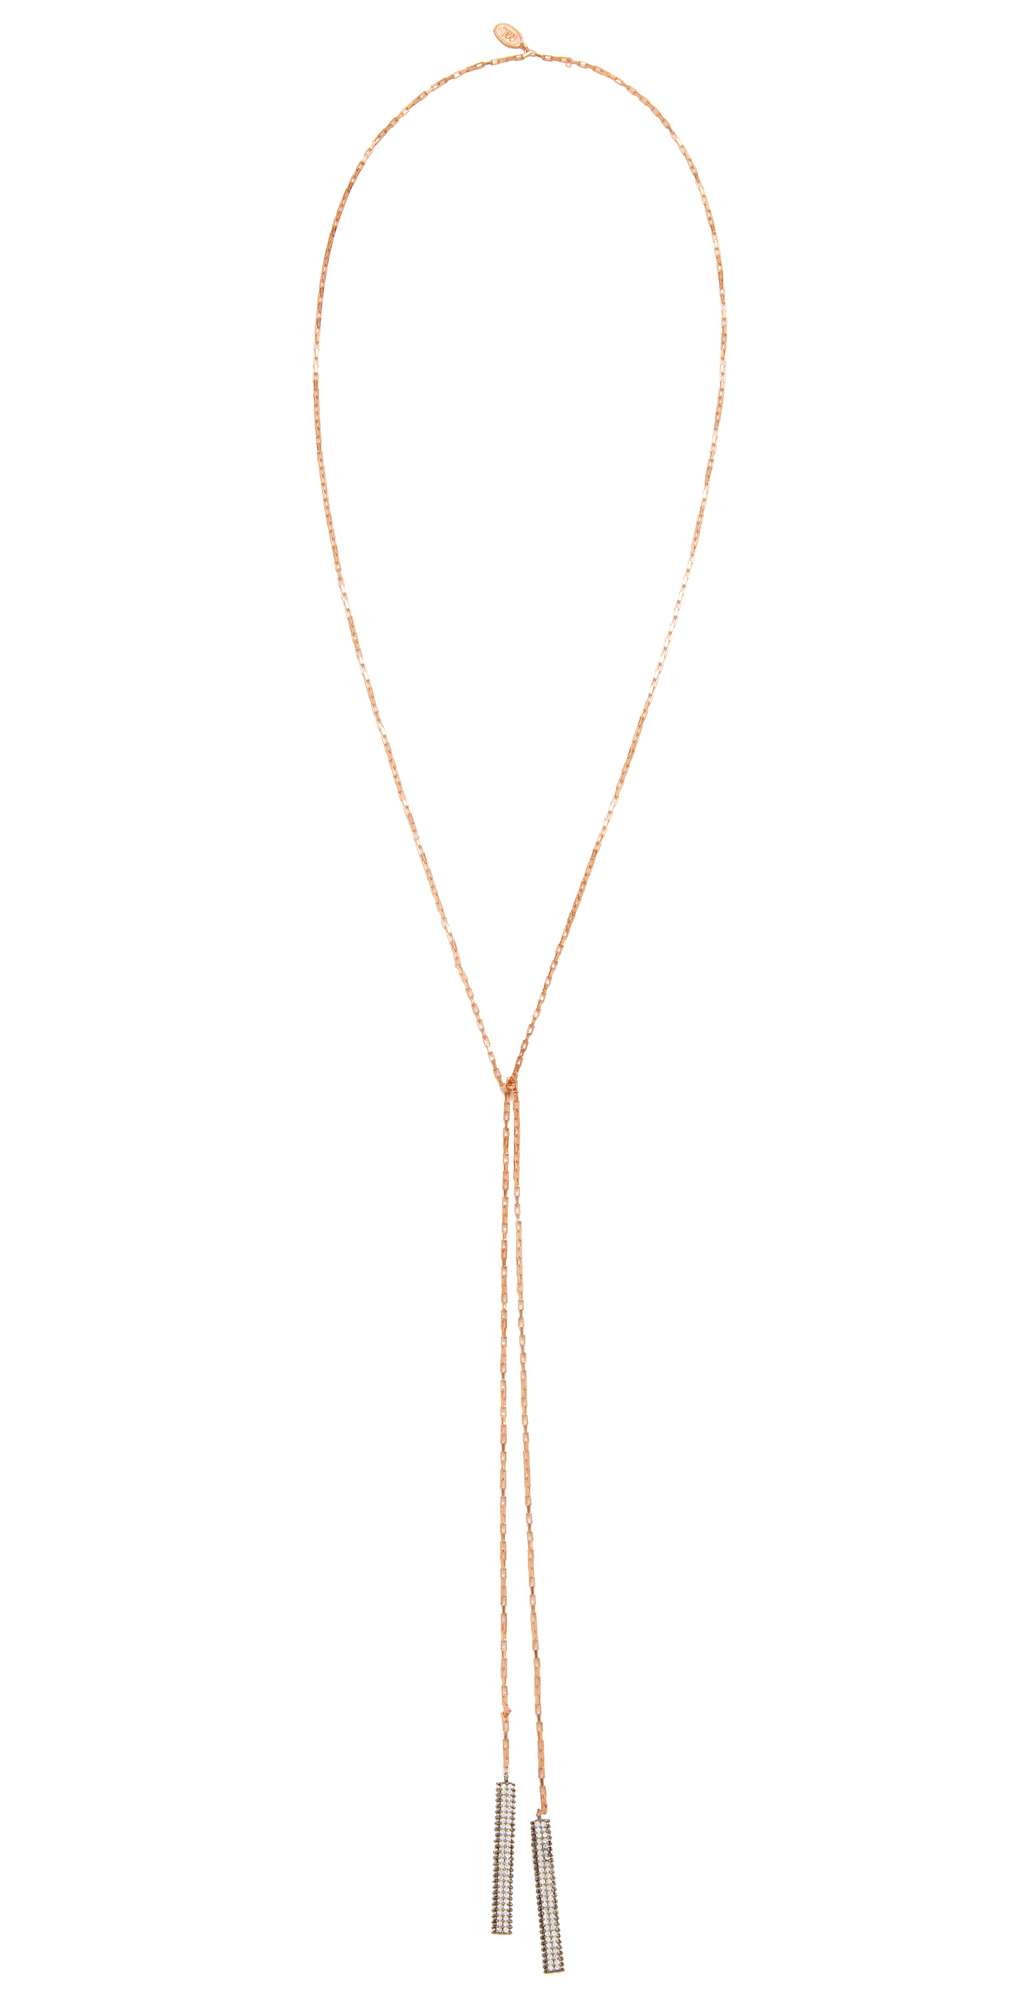 No Strings Attached Necklace Maha Lozi